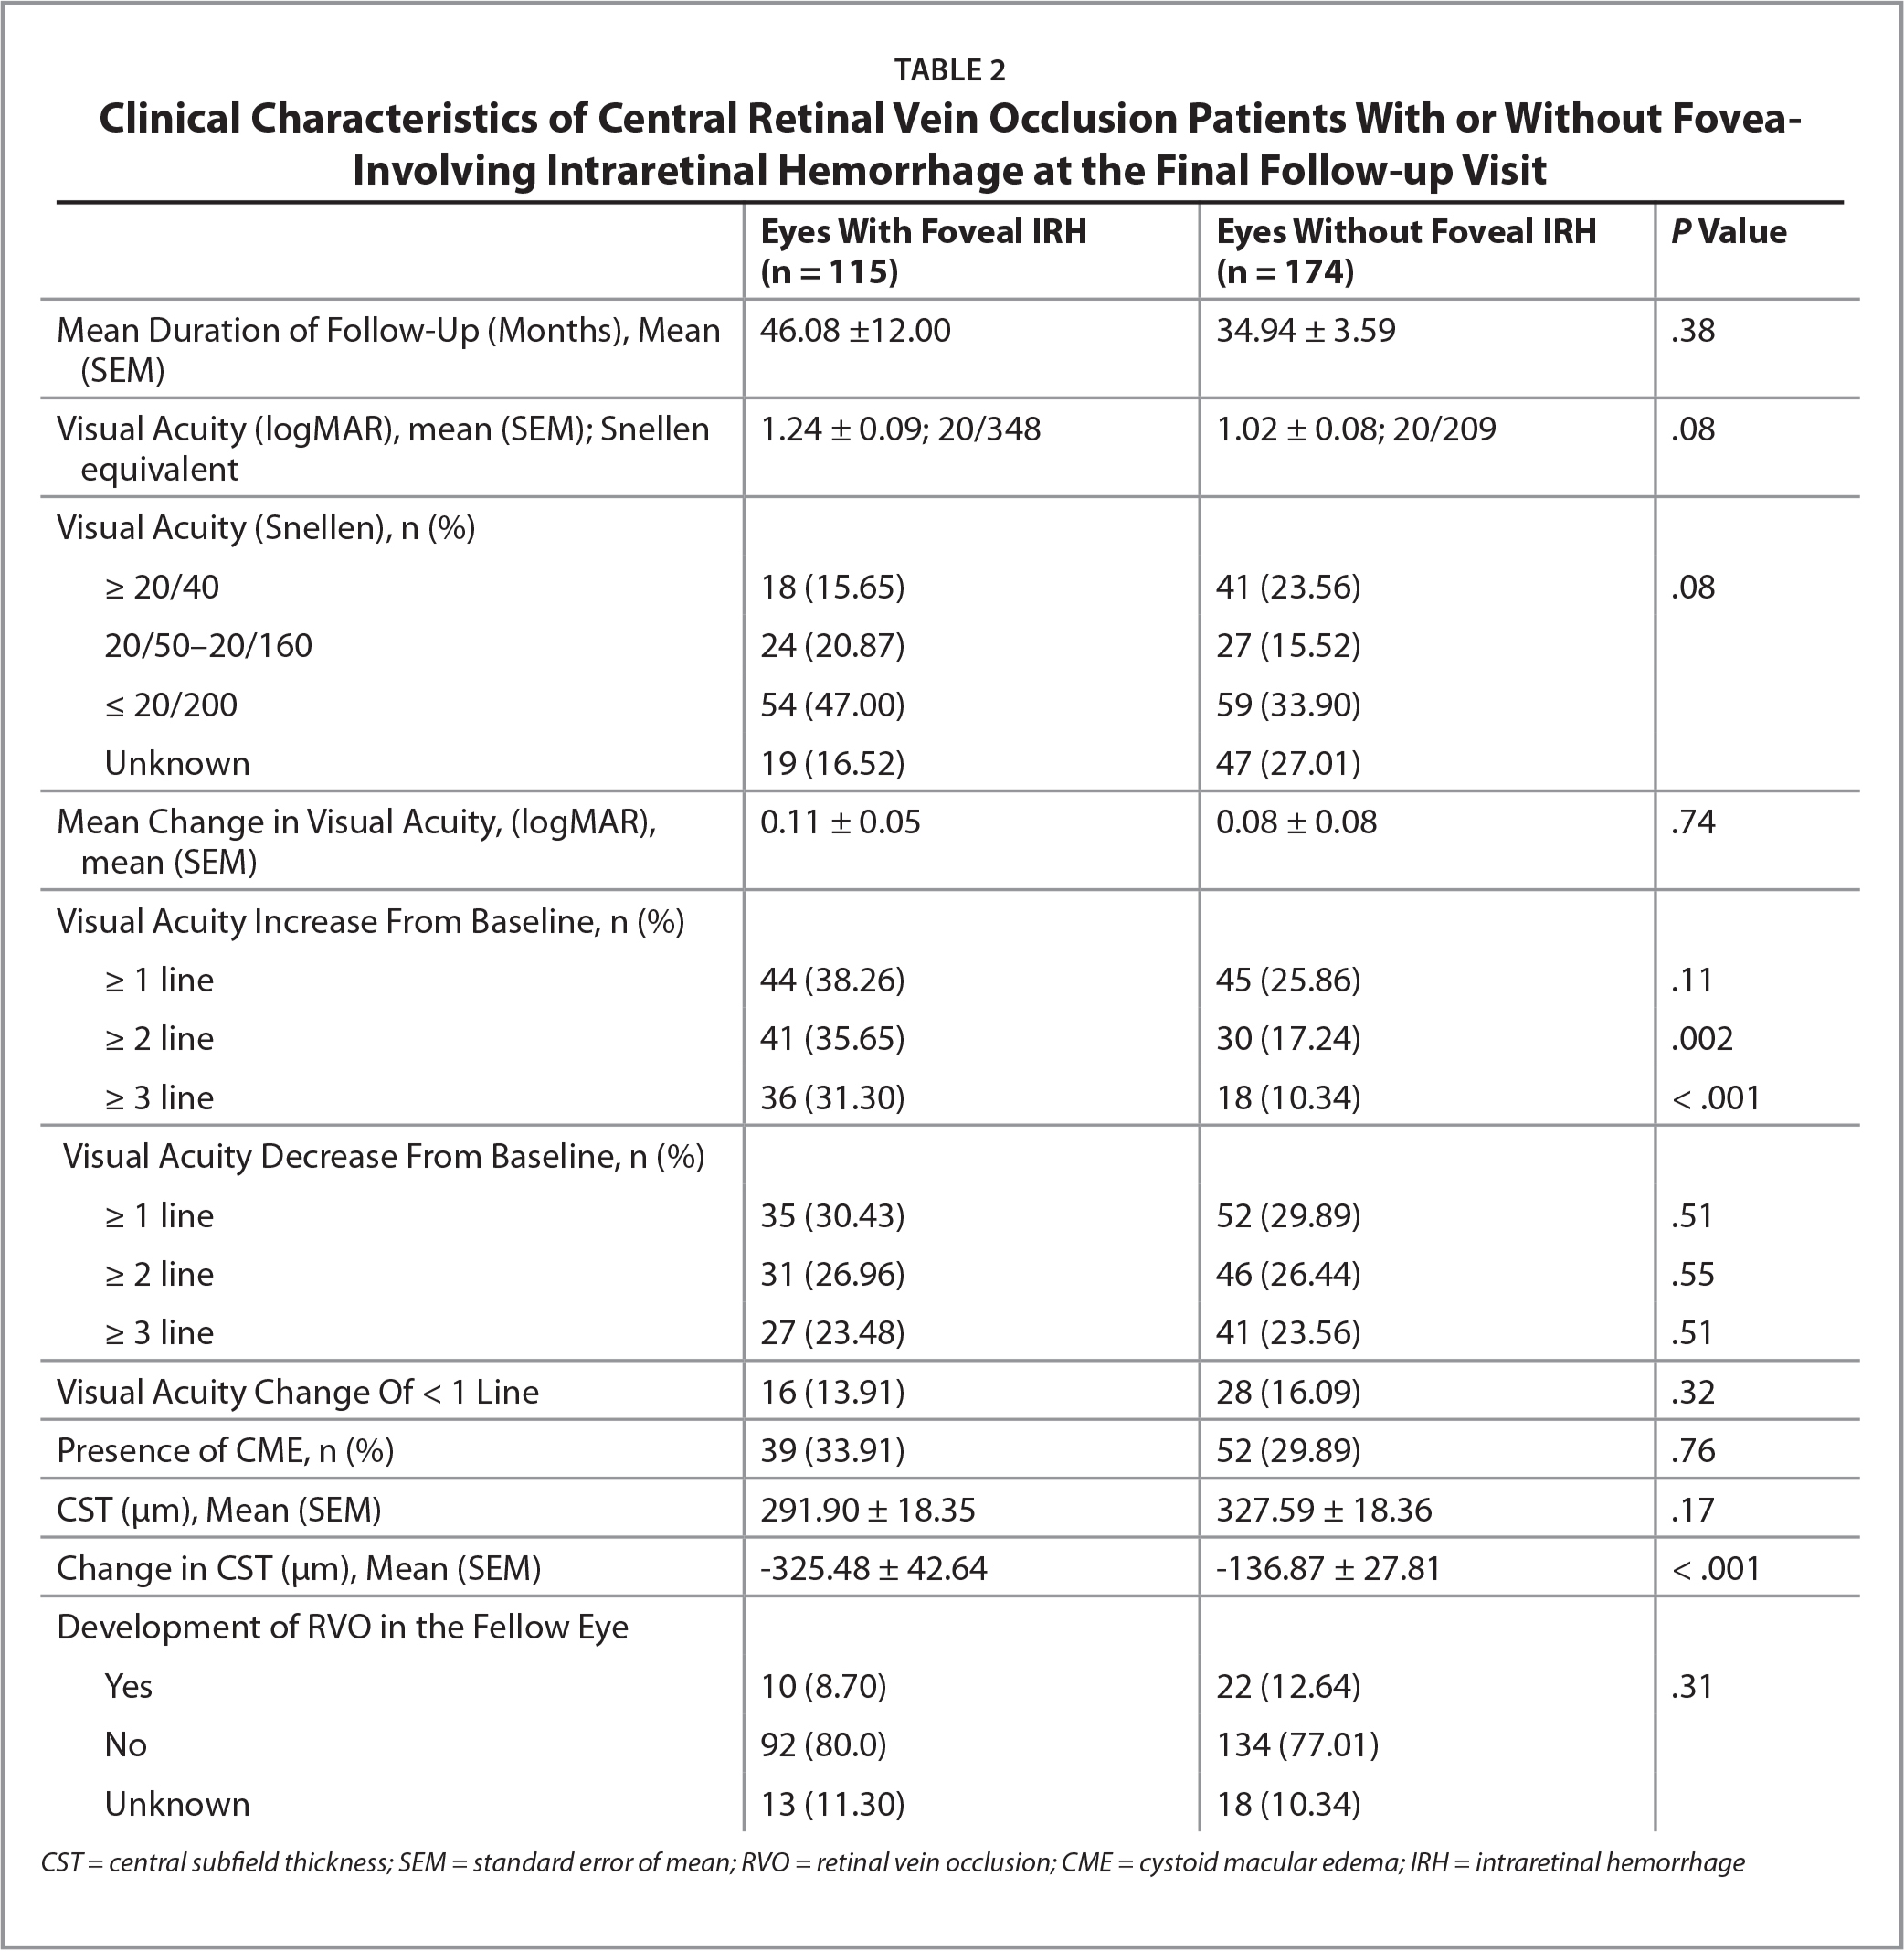 Clinical Characteristics of Central Retinal Vein Occlusion Patients With or Without Fovea-Involving Intraretinal Hemorrhage at the Final Follow-up Visit